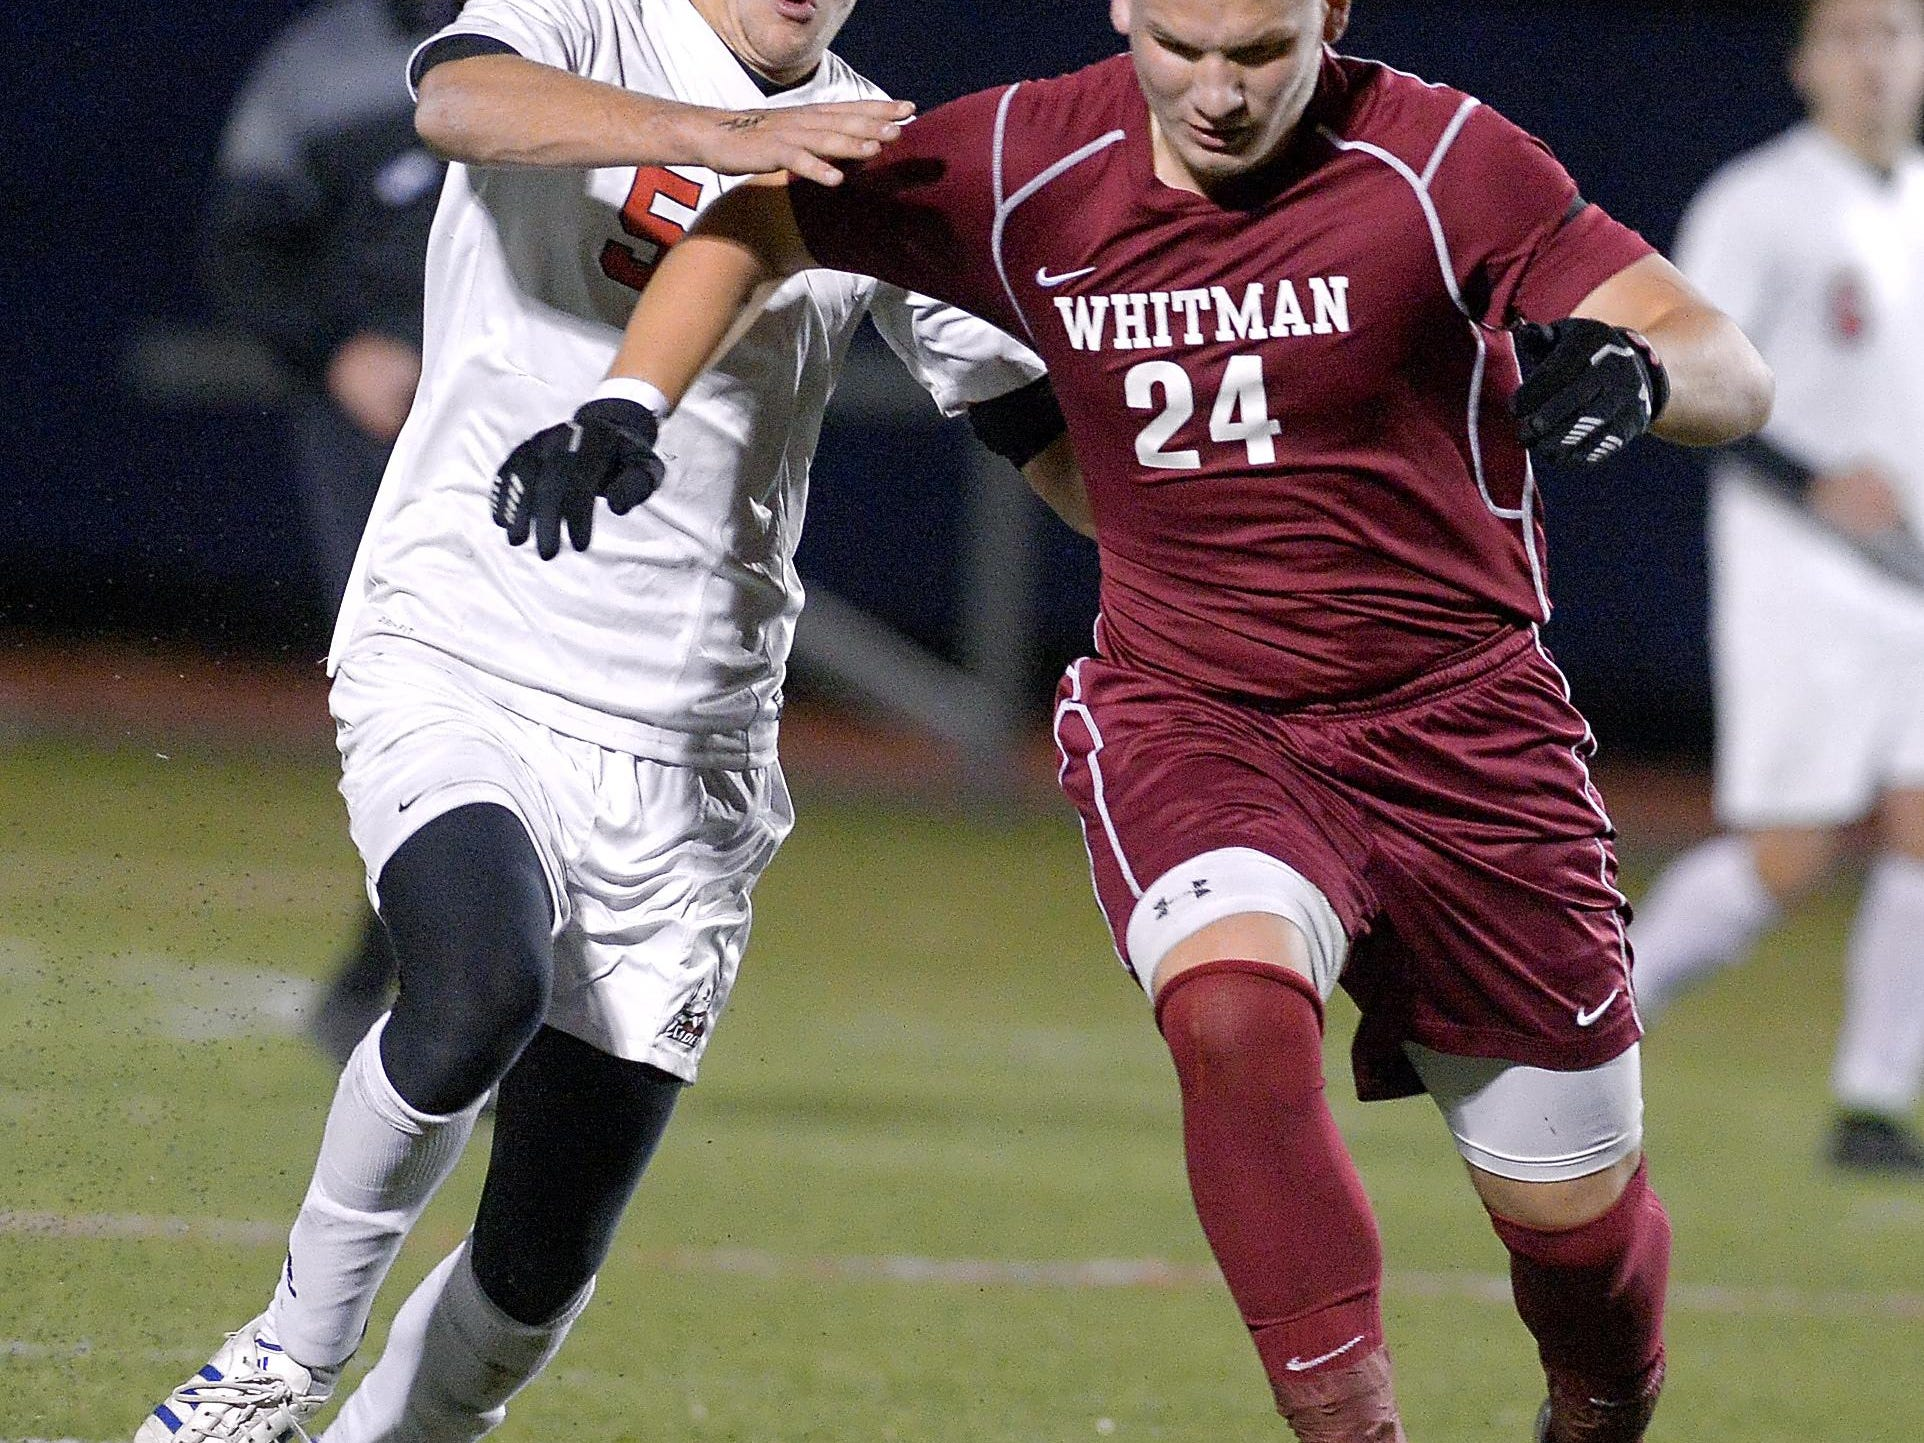 Hilton's Jeff Hibbard, left, battles for the ball against Walt Whitman's Sean Zagorski during a NYSPHSAA Boys Soccer Championships Class AA semifinal played at Middletown High School on Saturday, November 14, 2015. Hilton's season ended with a 7-3 loss to Walt Whitman-XI.